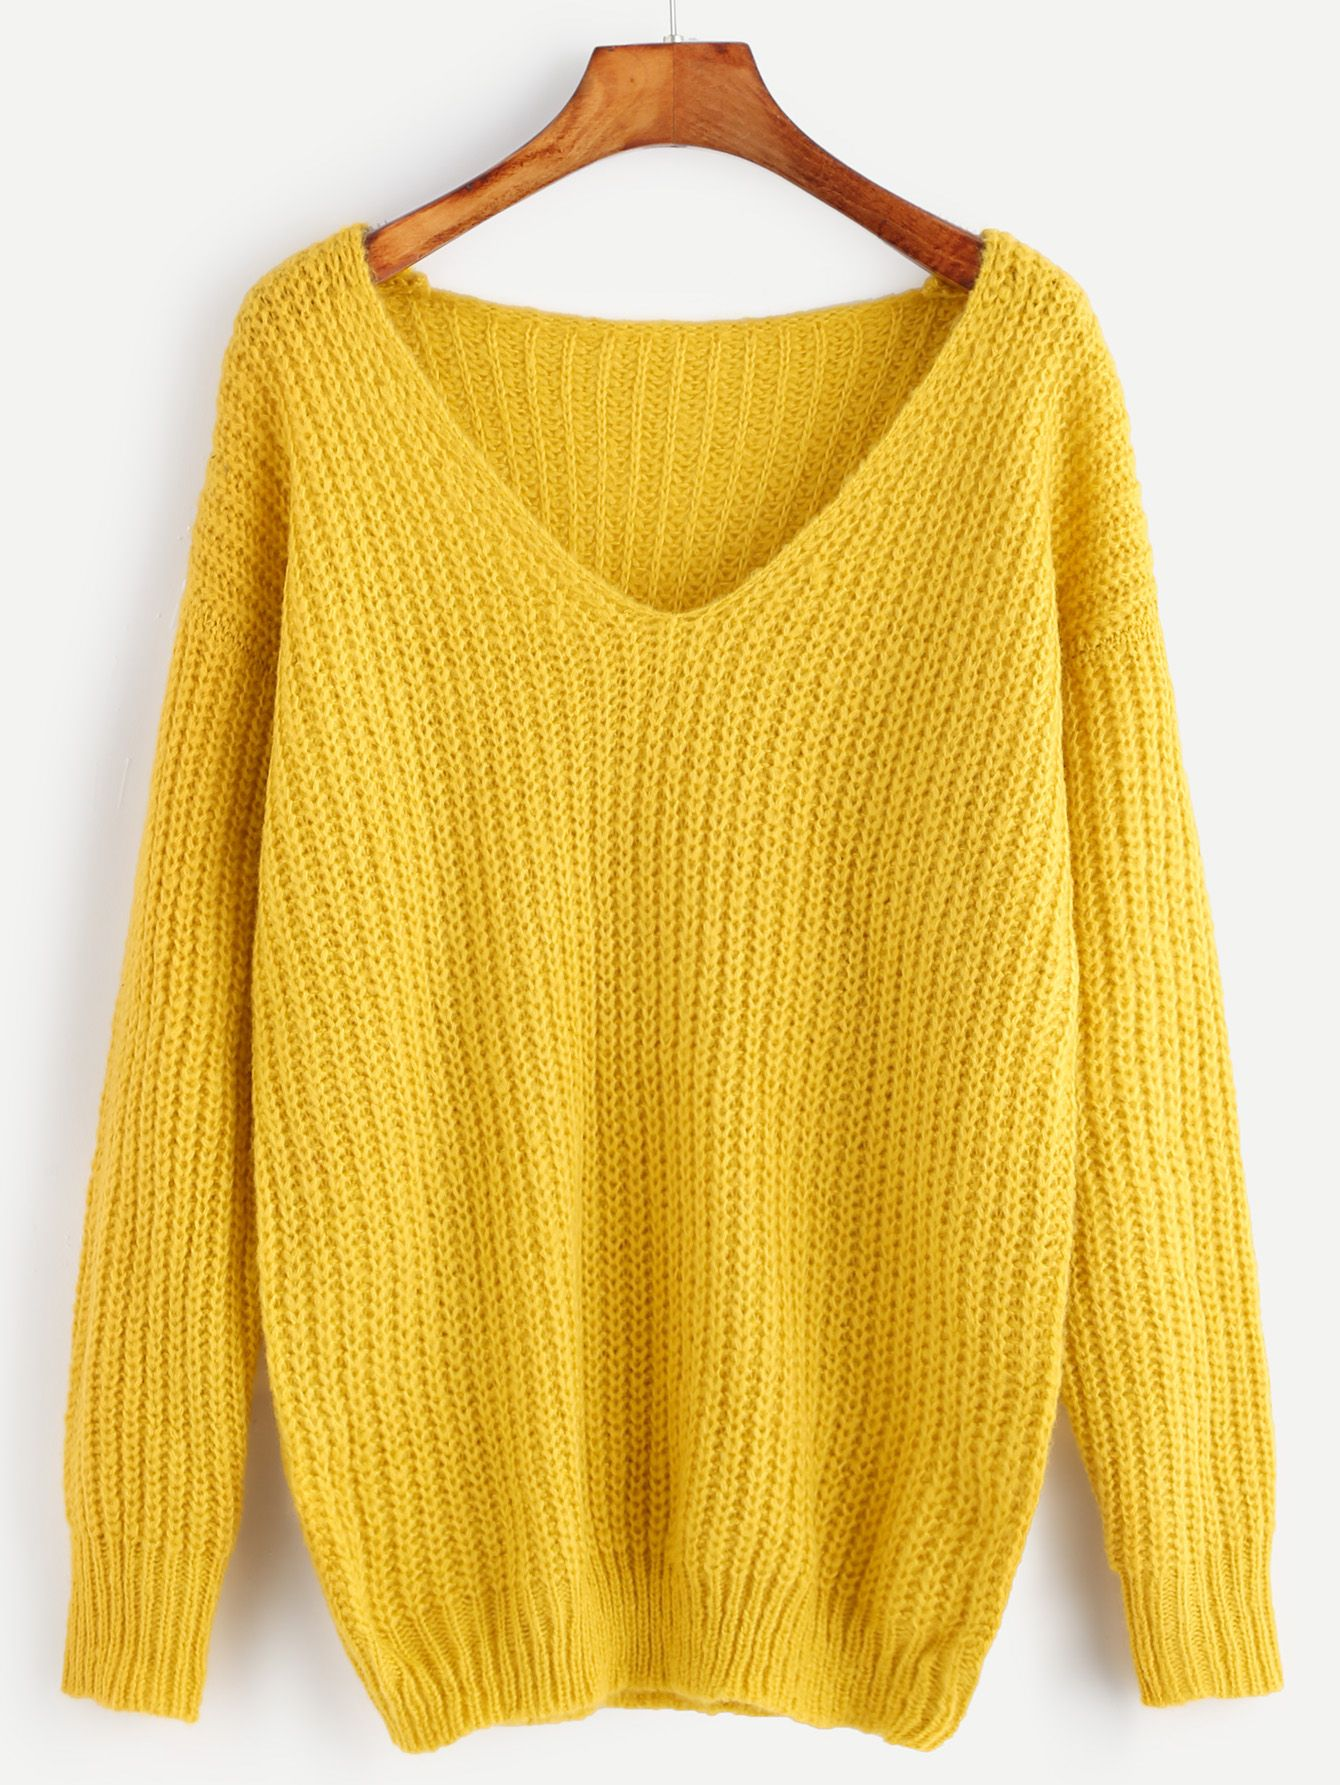 8b0db47387 Shop Yellow Ribbed Knit V Neck Drop Shoulder Sweater online. SheIn offers  Yellow Ribbed Knit V Neck Drop Shoulder Sweater & more to fit your  fashionable ...